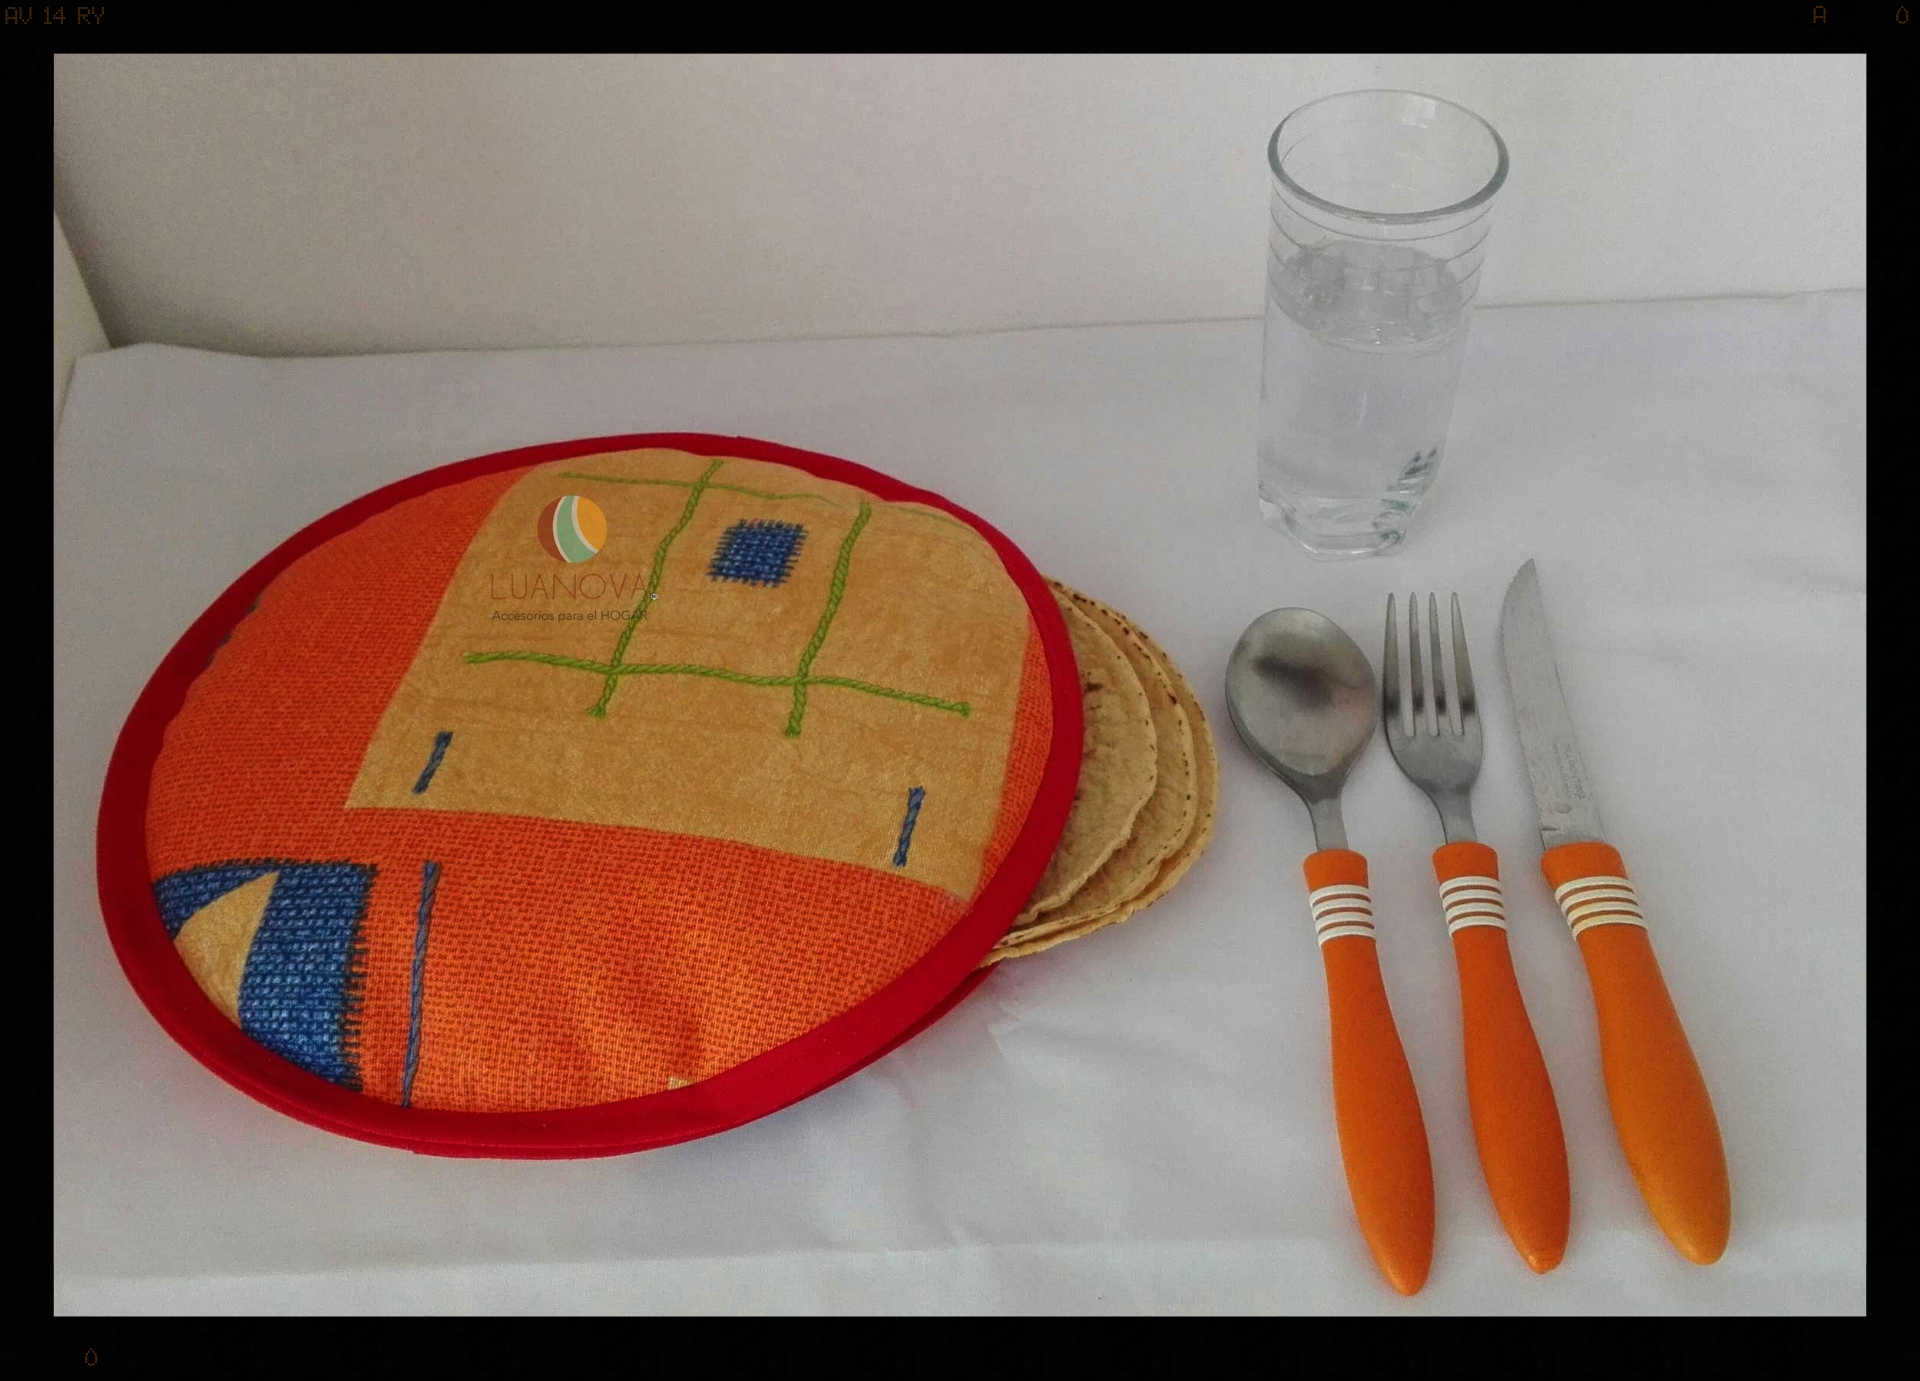 Colores vivos que alegran tu mesa Bright colors that brighten up your table